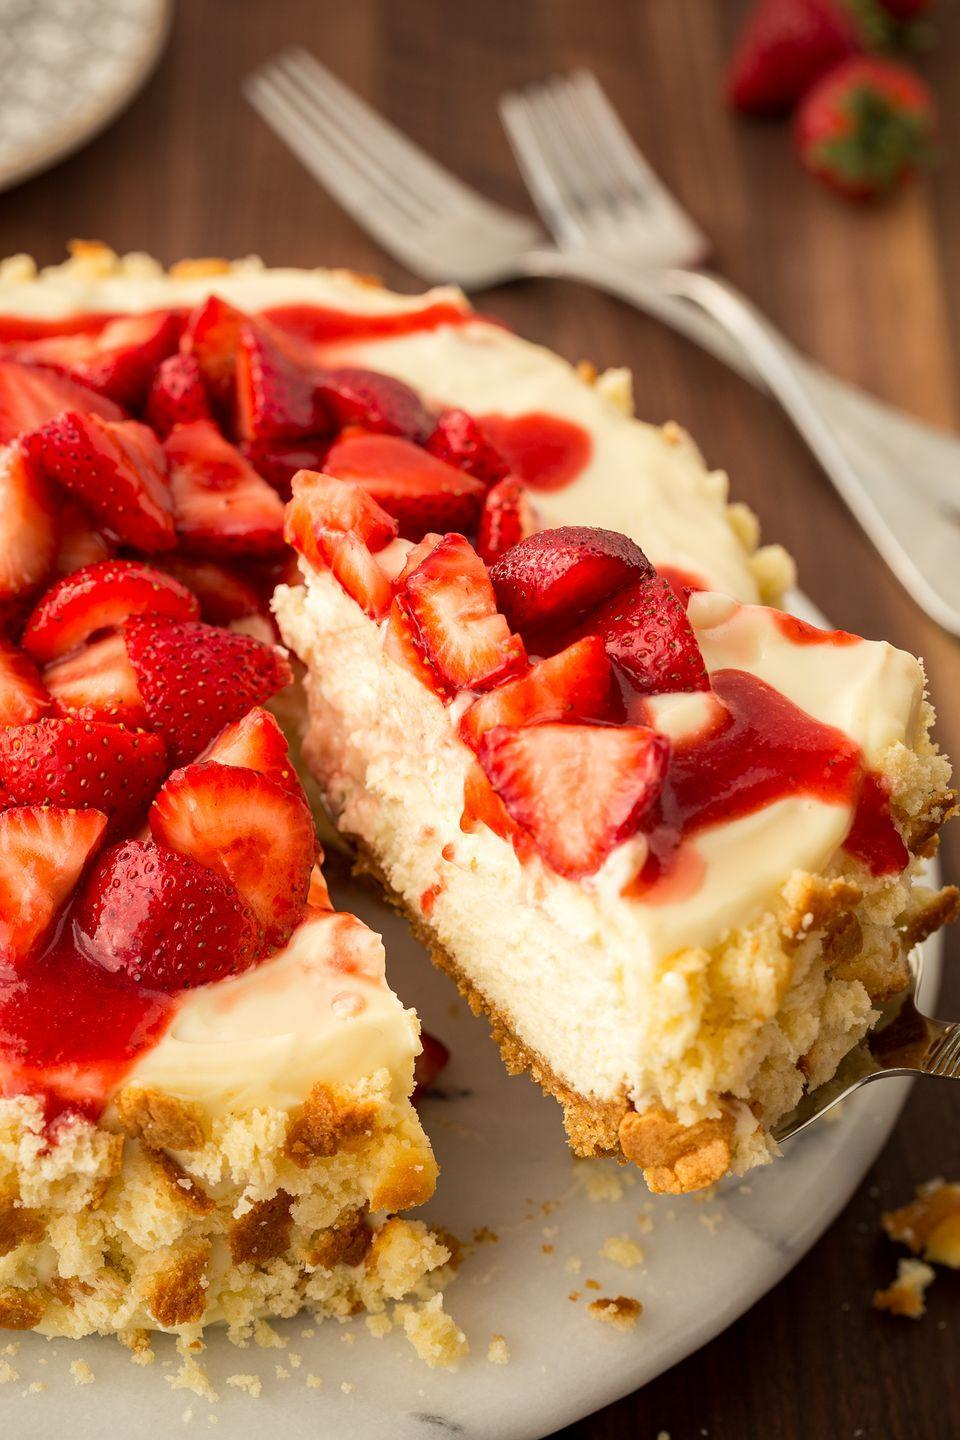 """<p>A cheesecake version makes the dessert even creamier.</p><p>Get the recipe from <a href=""""https://www.delish.com/cooking/recipe-ideas/recipes/a47084/strawberry-shortcake-cheesecake-dessert-recipe/"""" rel=""""nofollow noopener"""" target=""""_blank"""" data-ylk=""""slk:Delish"""" class=""""link rapid-noclick-resp"""">Delish</a>. </p>"""